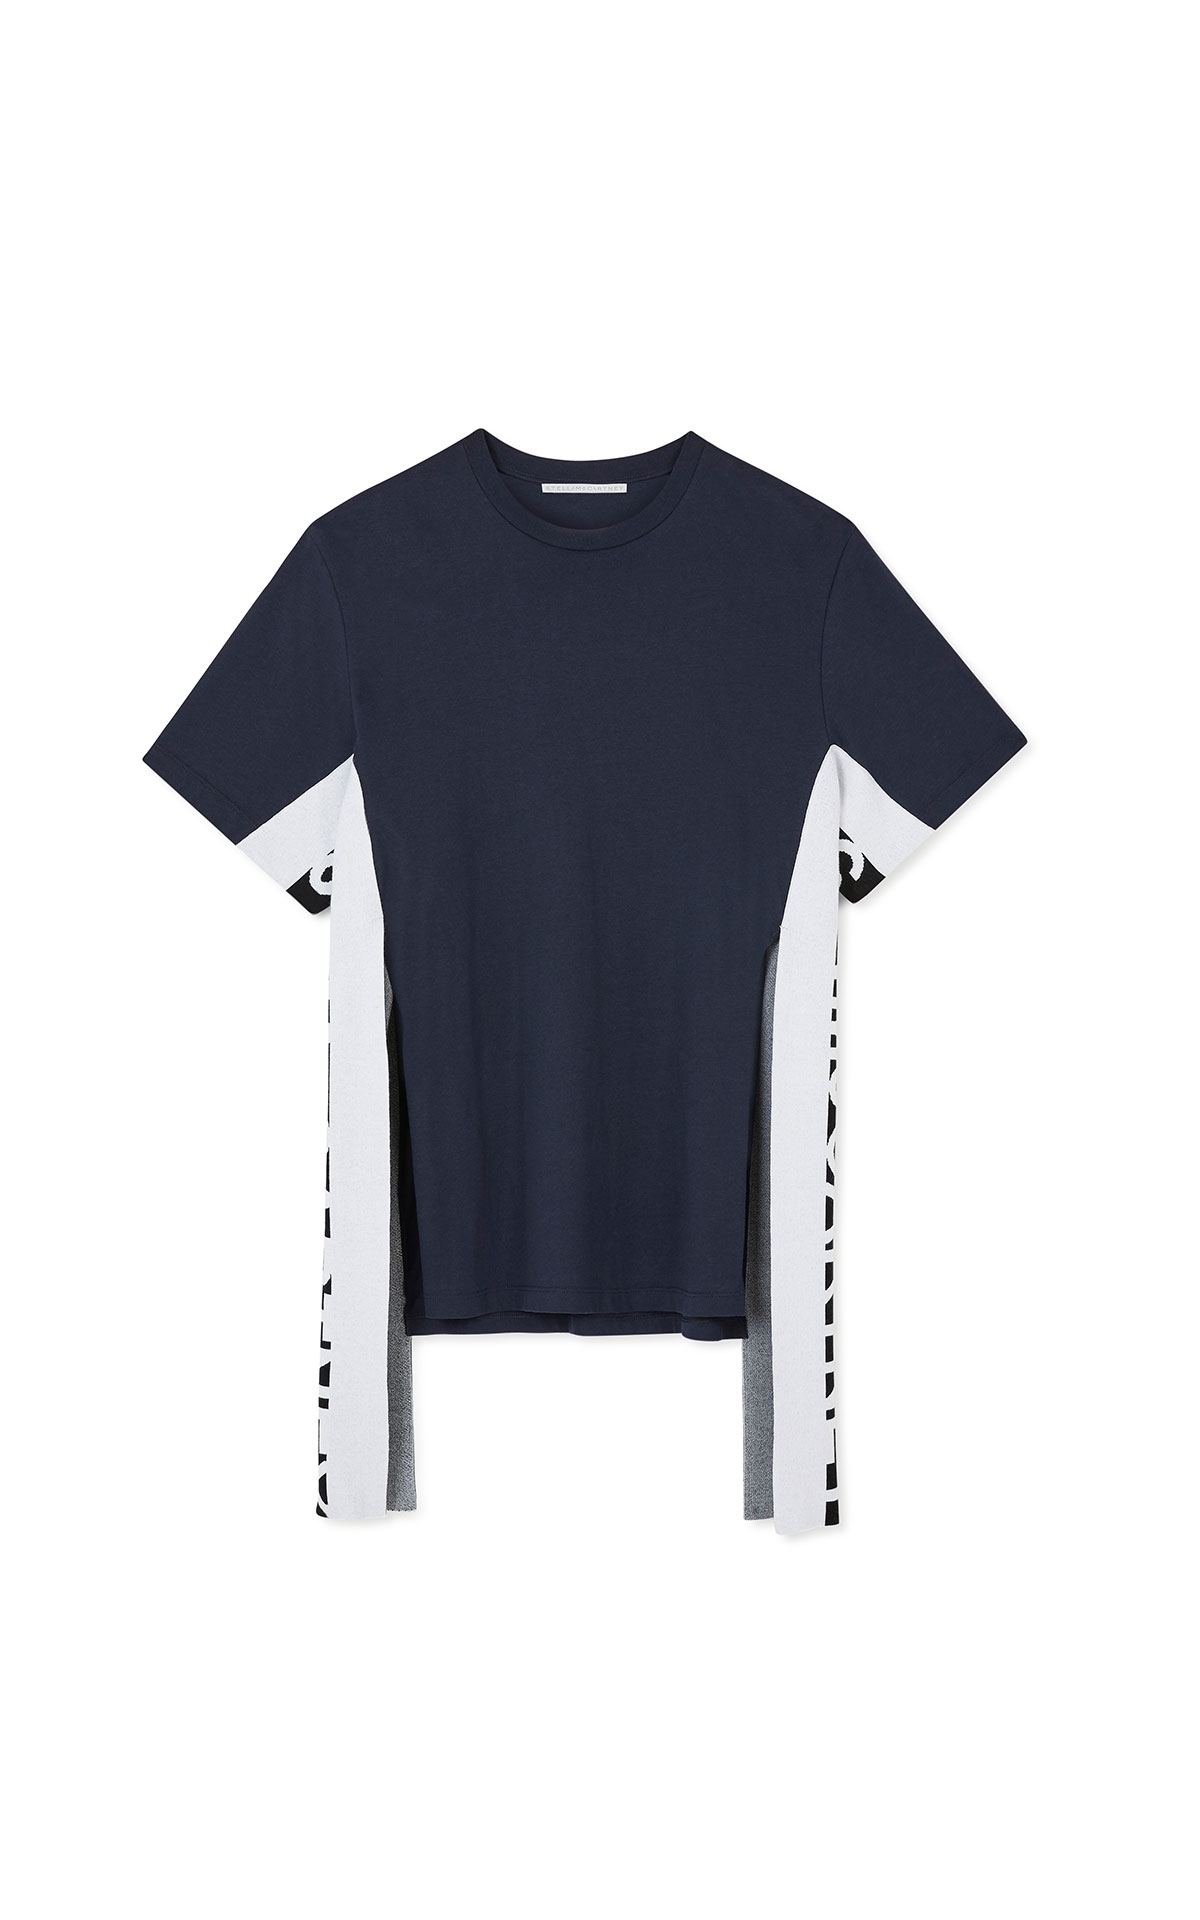 Stella McCartney Logo stripes t-shirt from Bicester Village